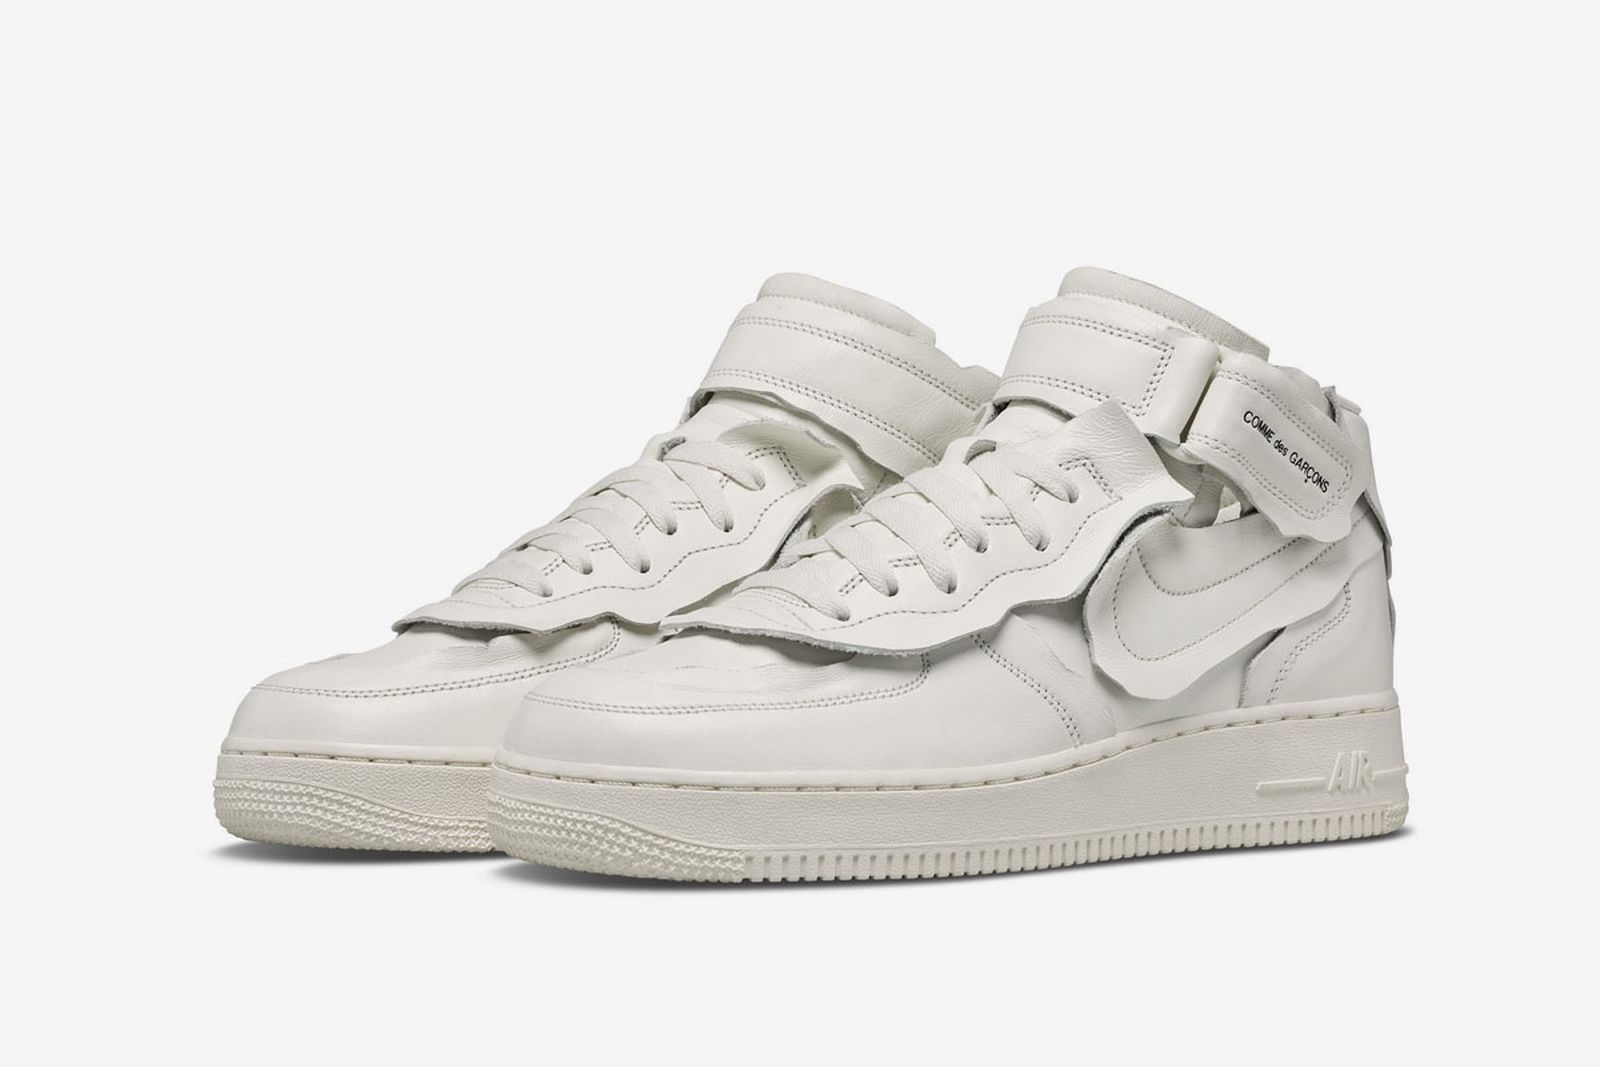 comme-des-garcons-nike-air-force-1-mid-release-date-price-016